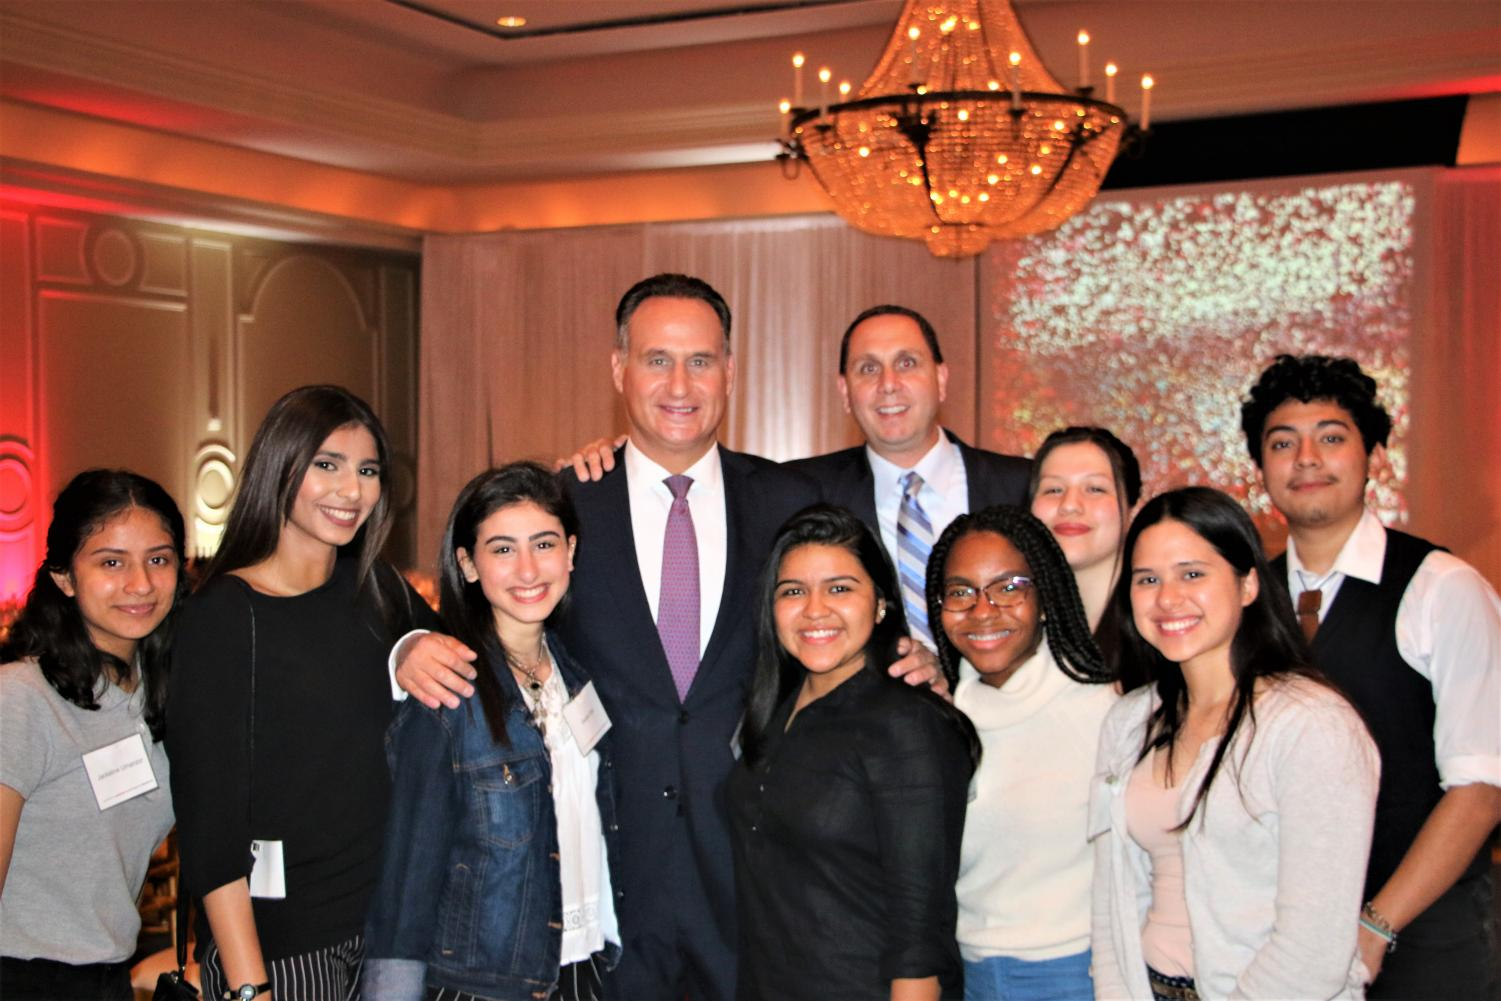 The Wisdom High School Journalism Team with NBC Nightly News & Telemundo Anchor Jose Diaz-Balart